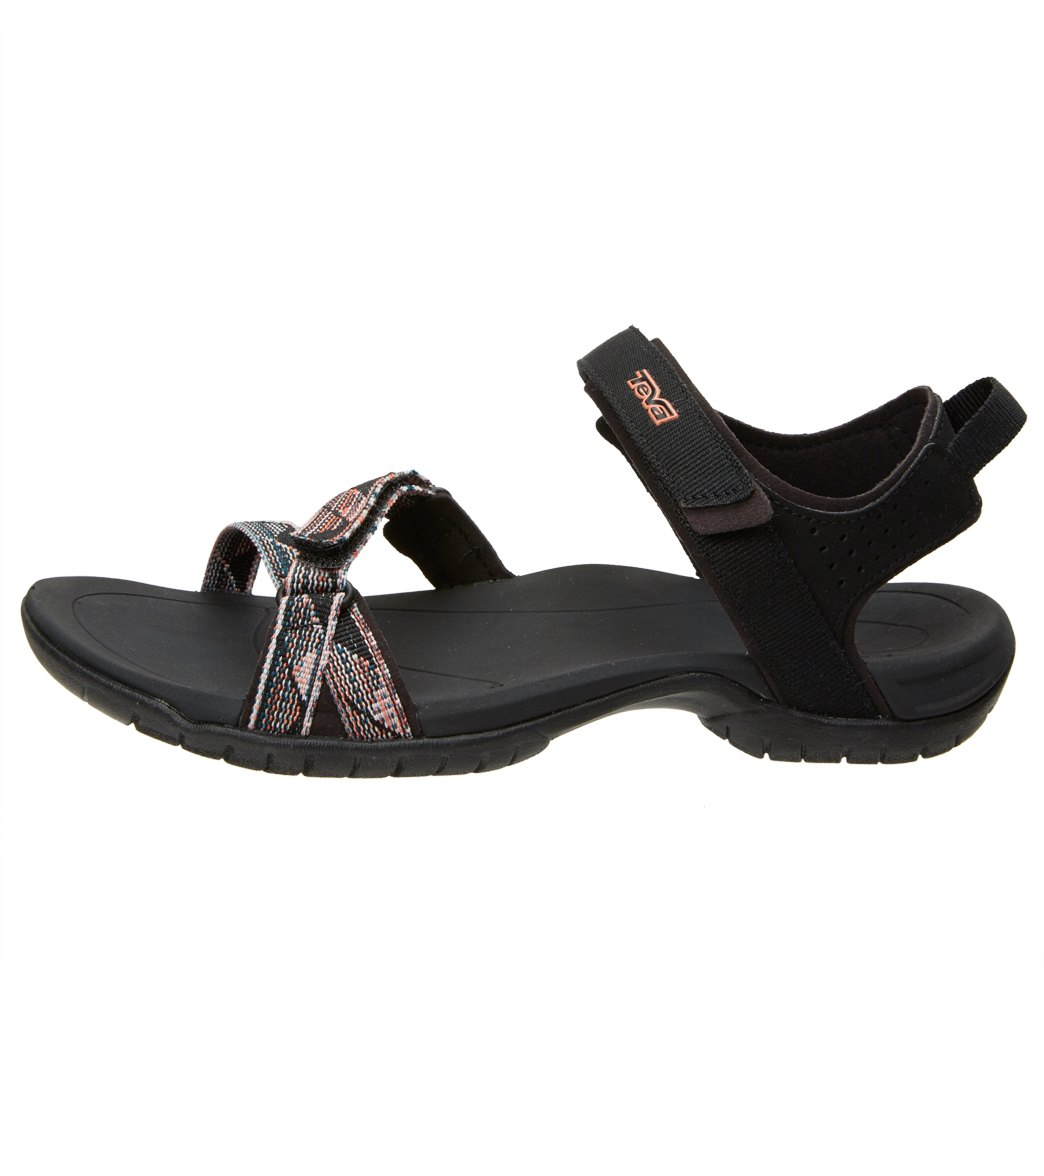 7d1e0abb80e Teva Women s Verra Sandal at SwimOutlet.com - Free Shipping